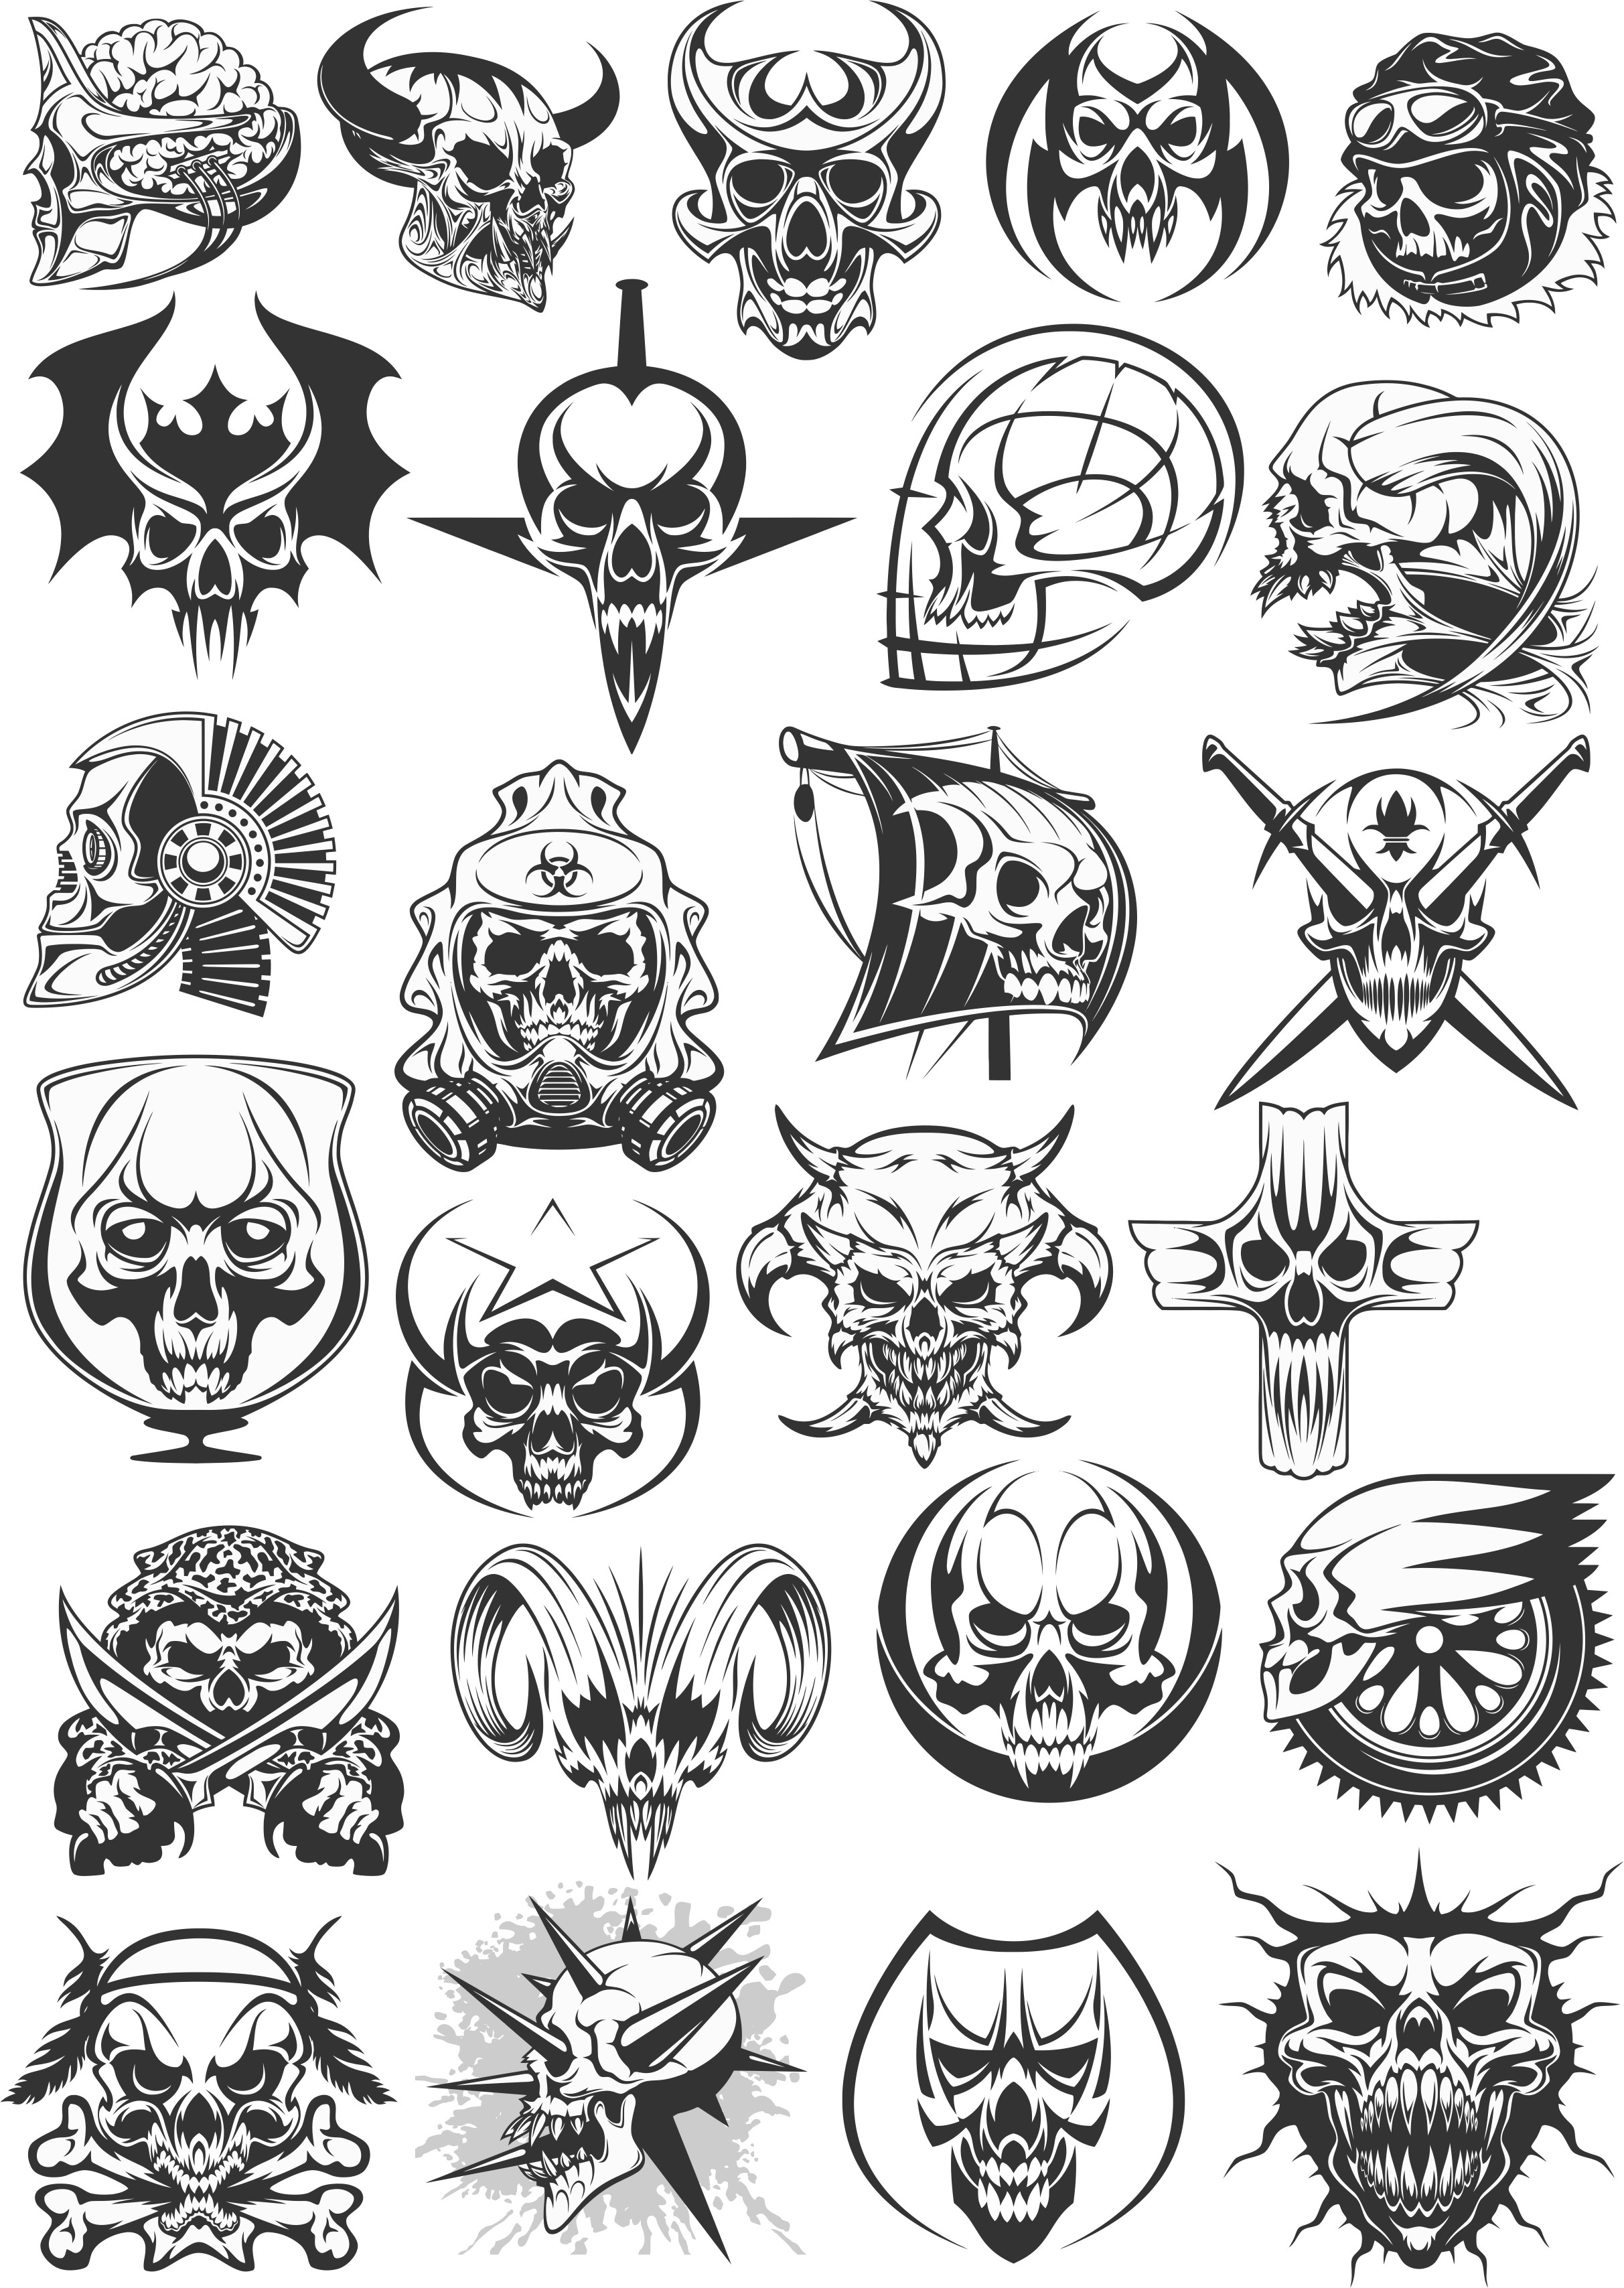 Skull Patterns For Plotter Cutting Free DXF File